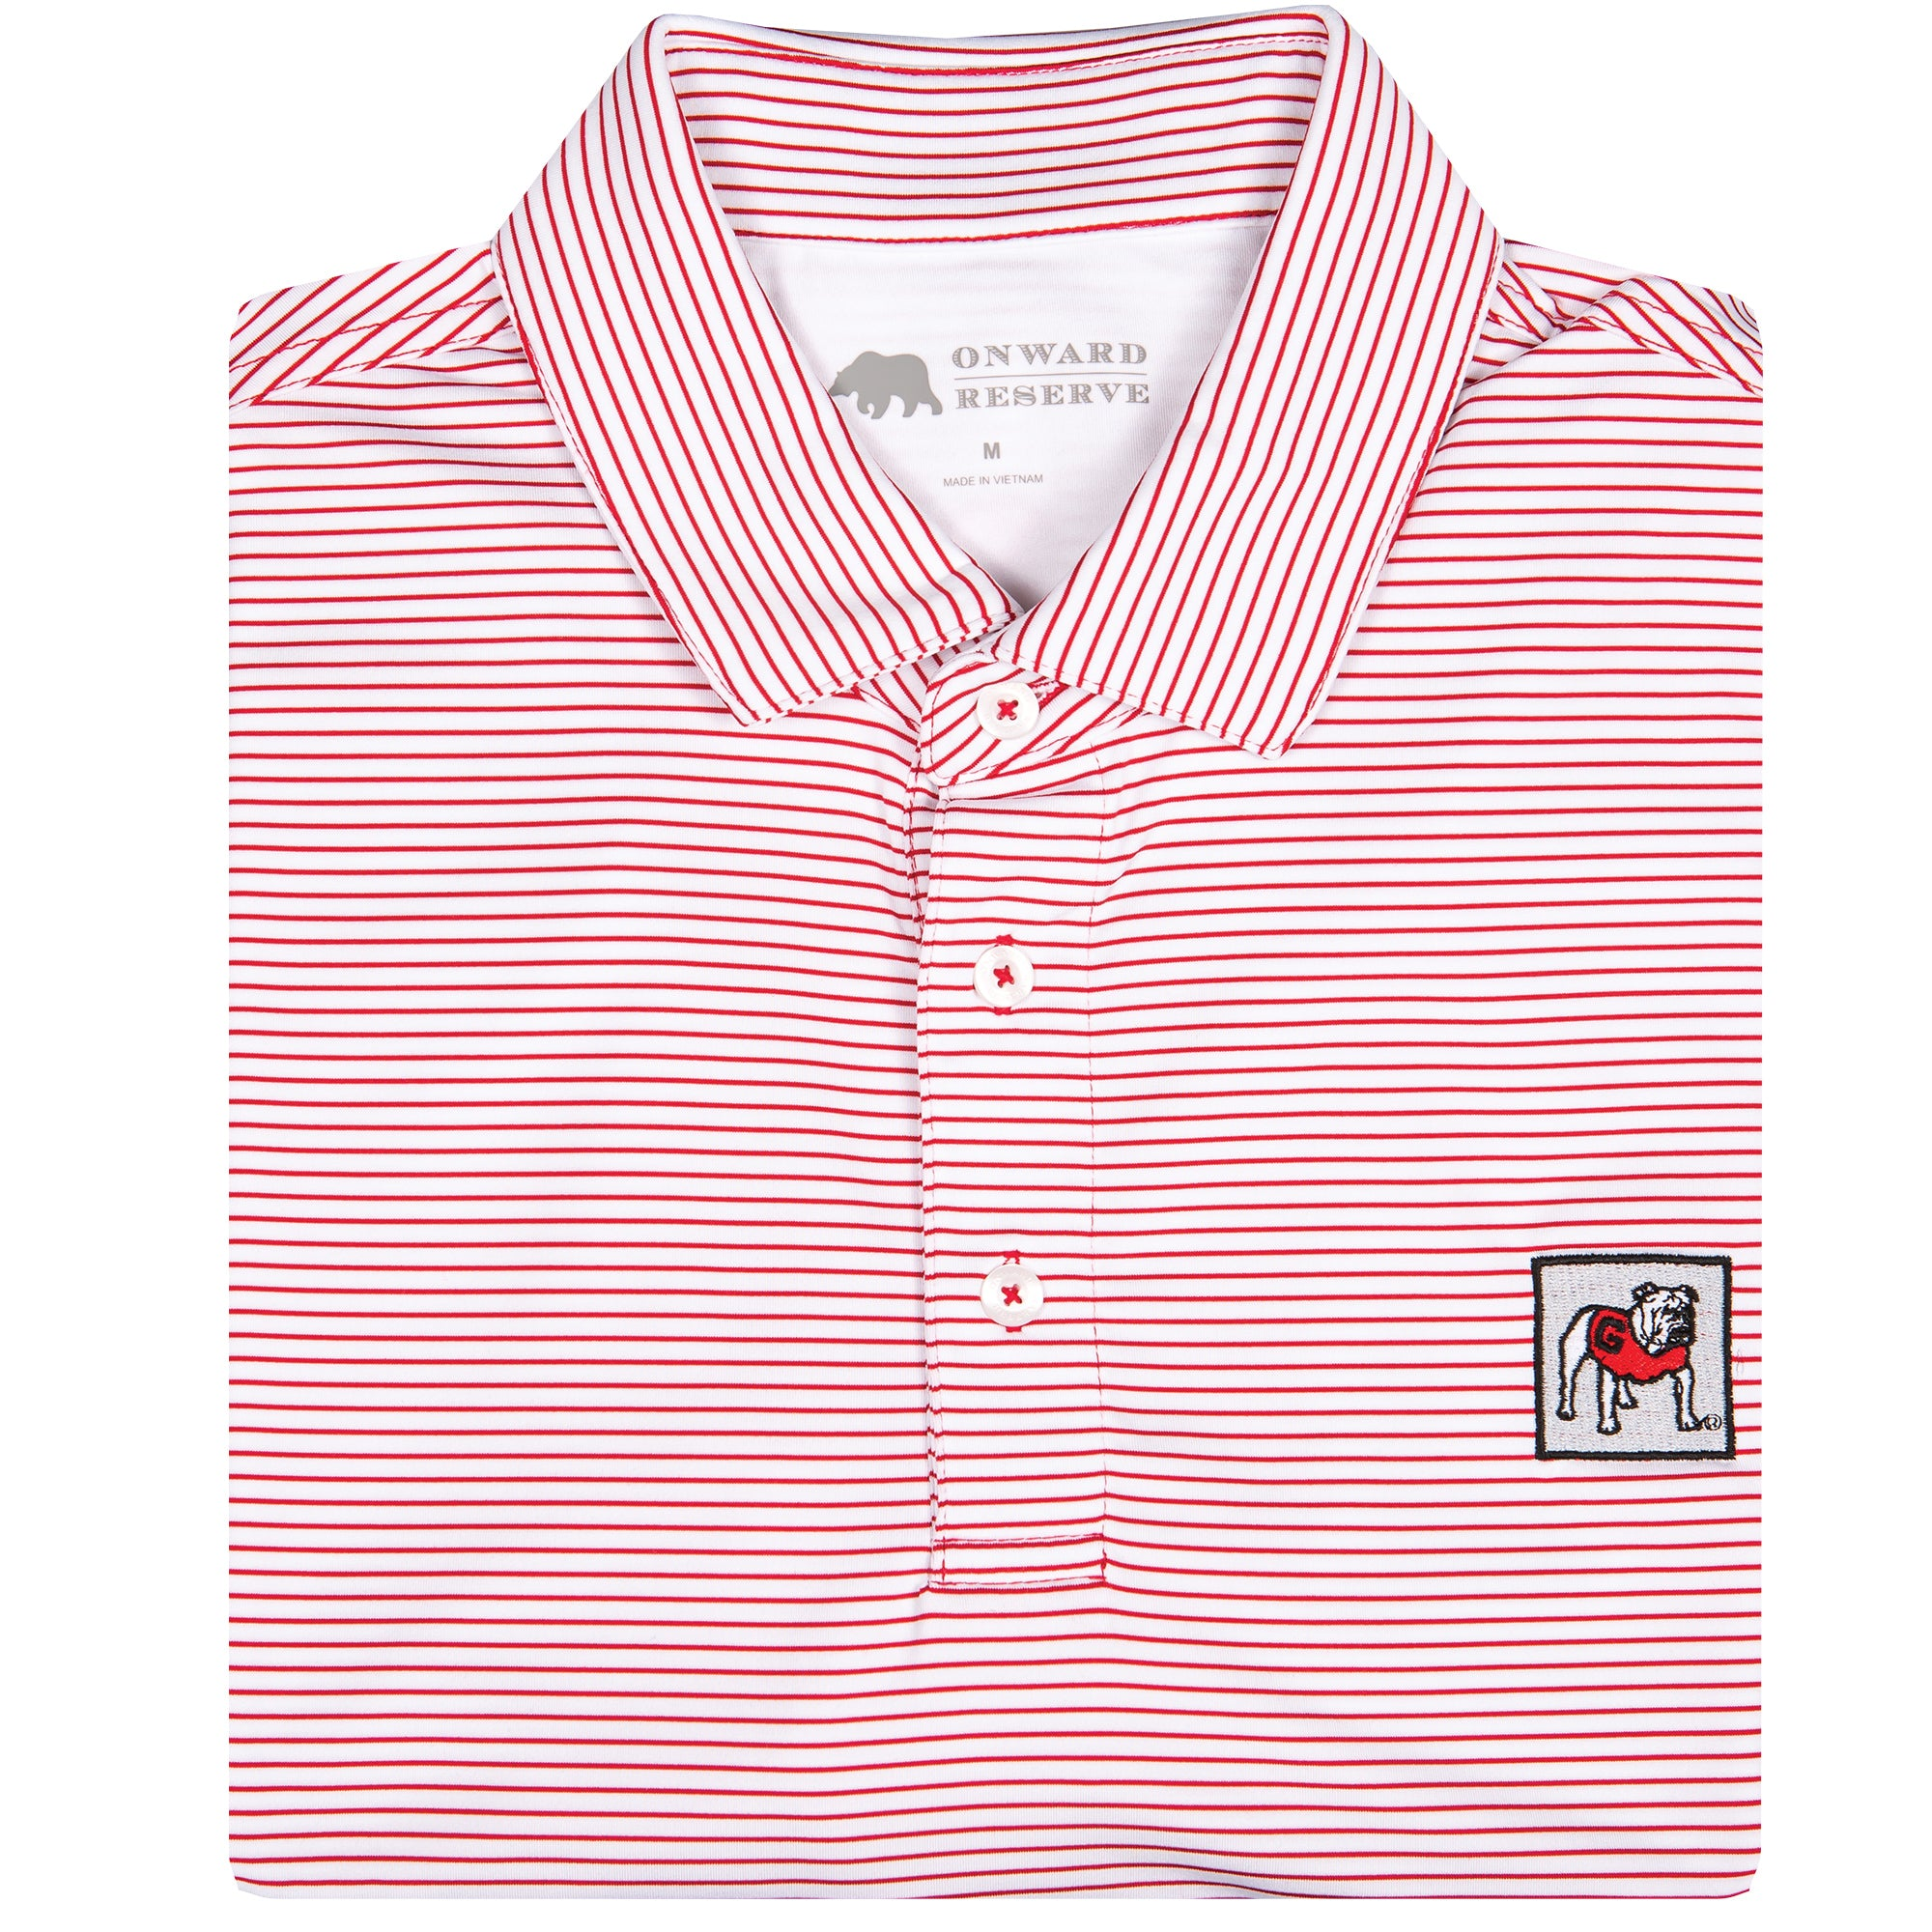 Magill Birdie Stripe Performance Polo - OnwardReserve